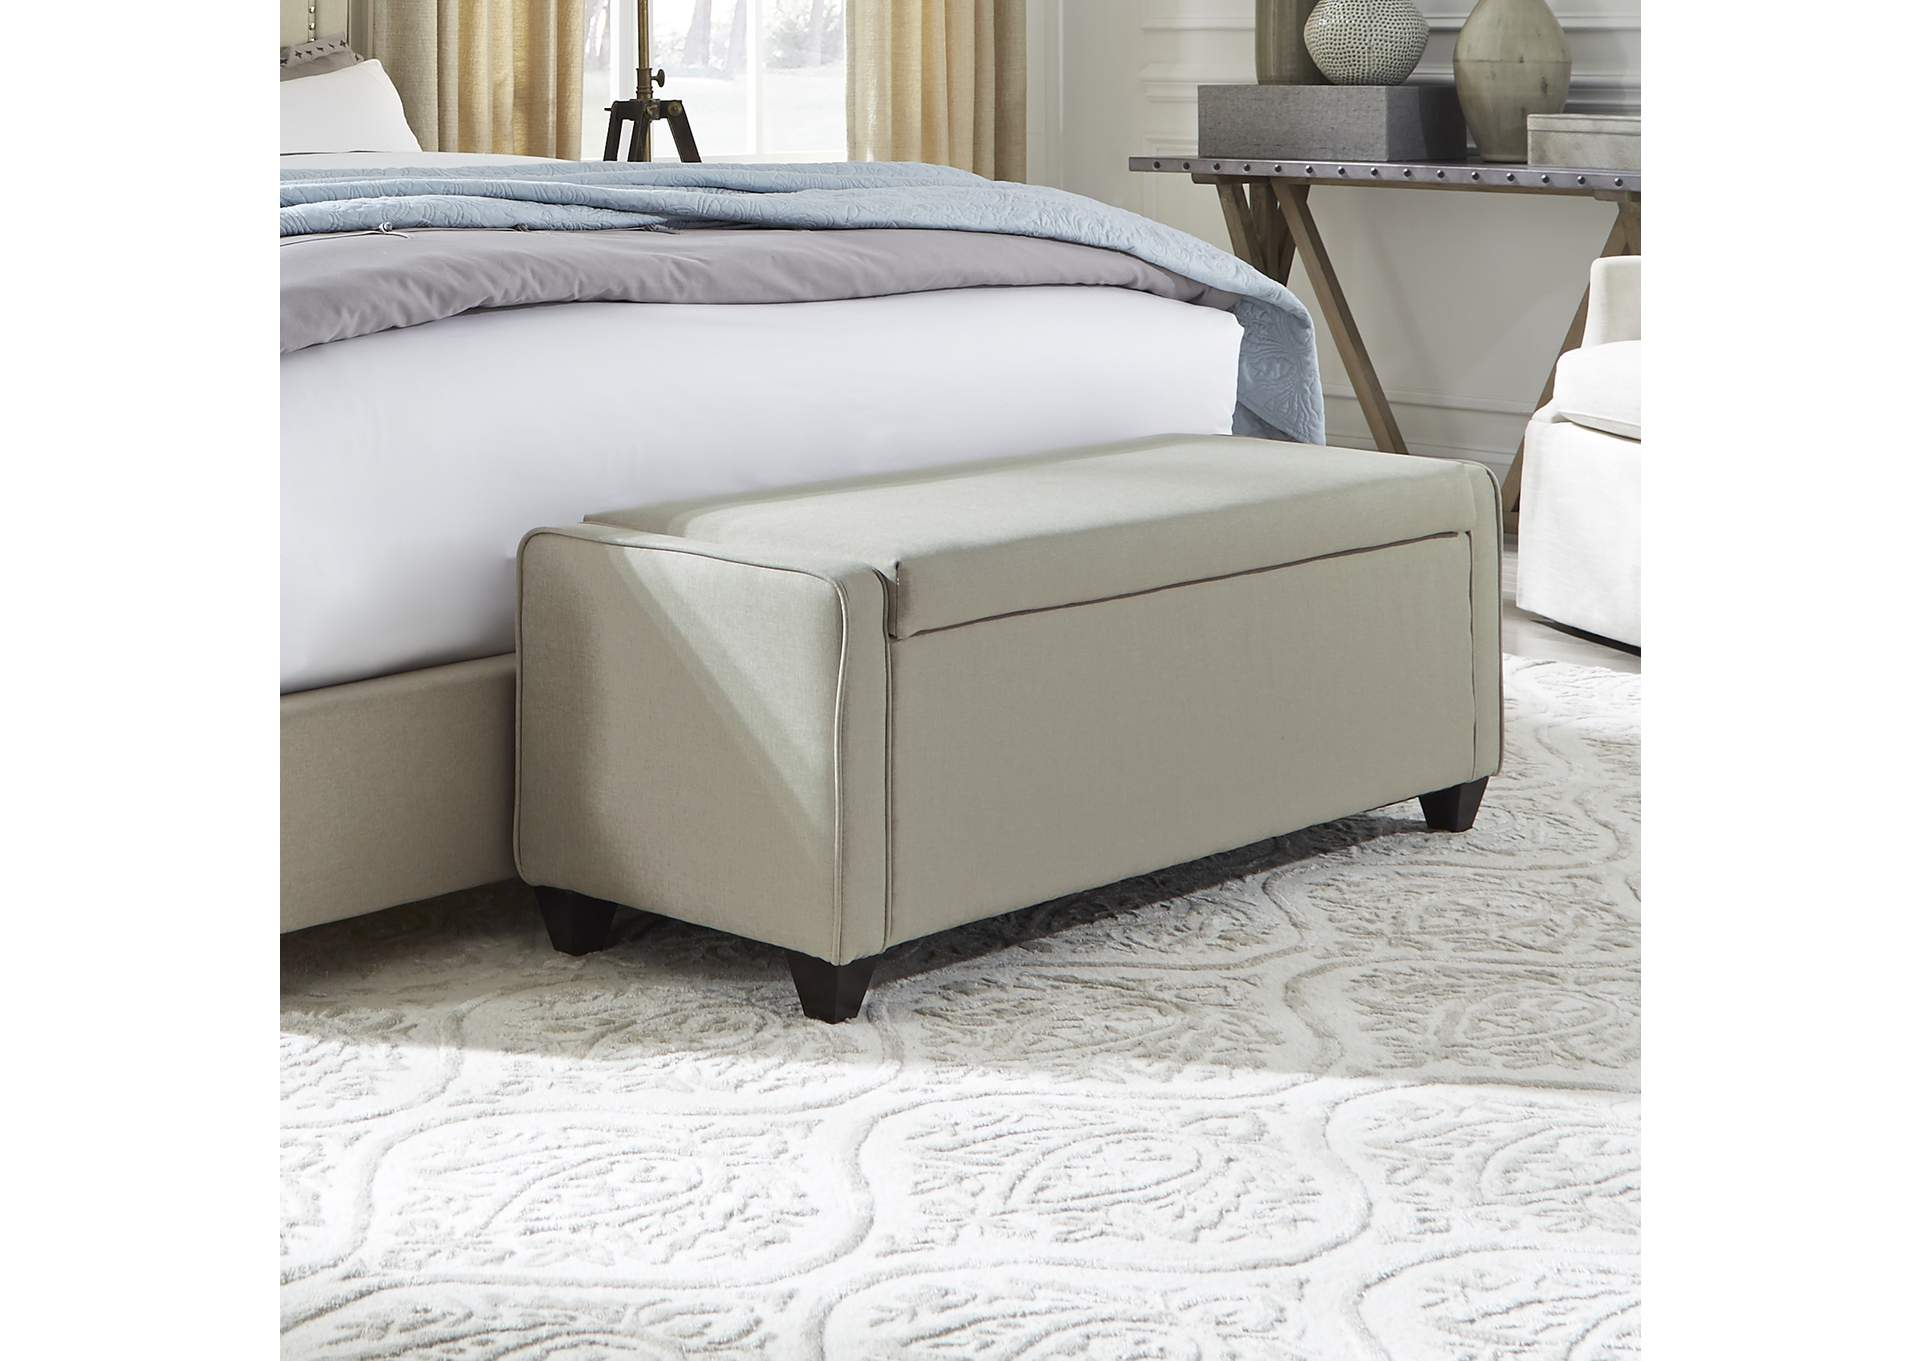 Upholstered Beds Natural Bed Bench (RTA),Liberty